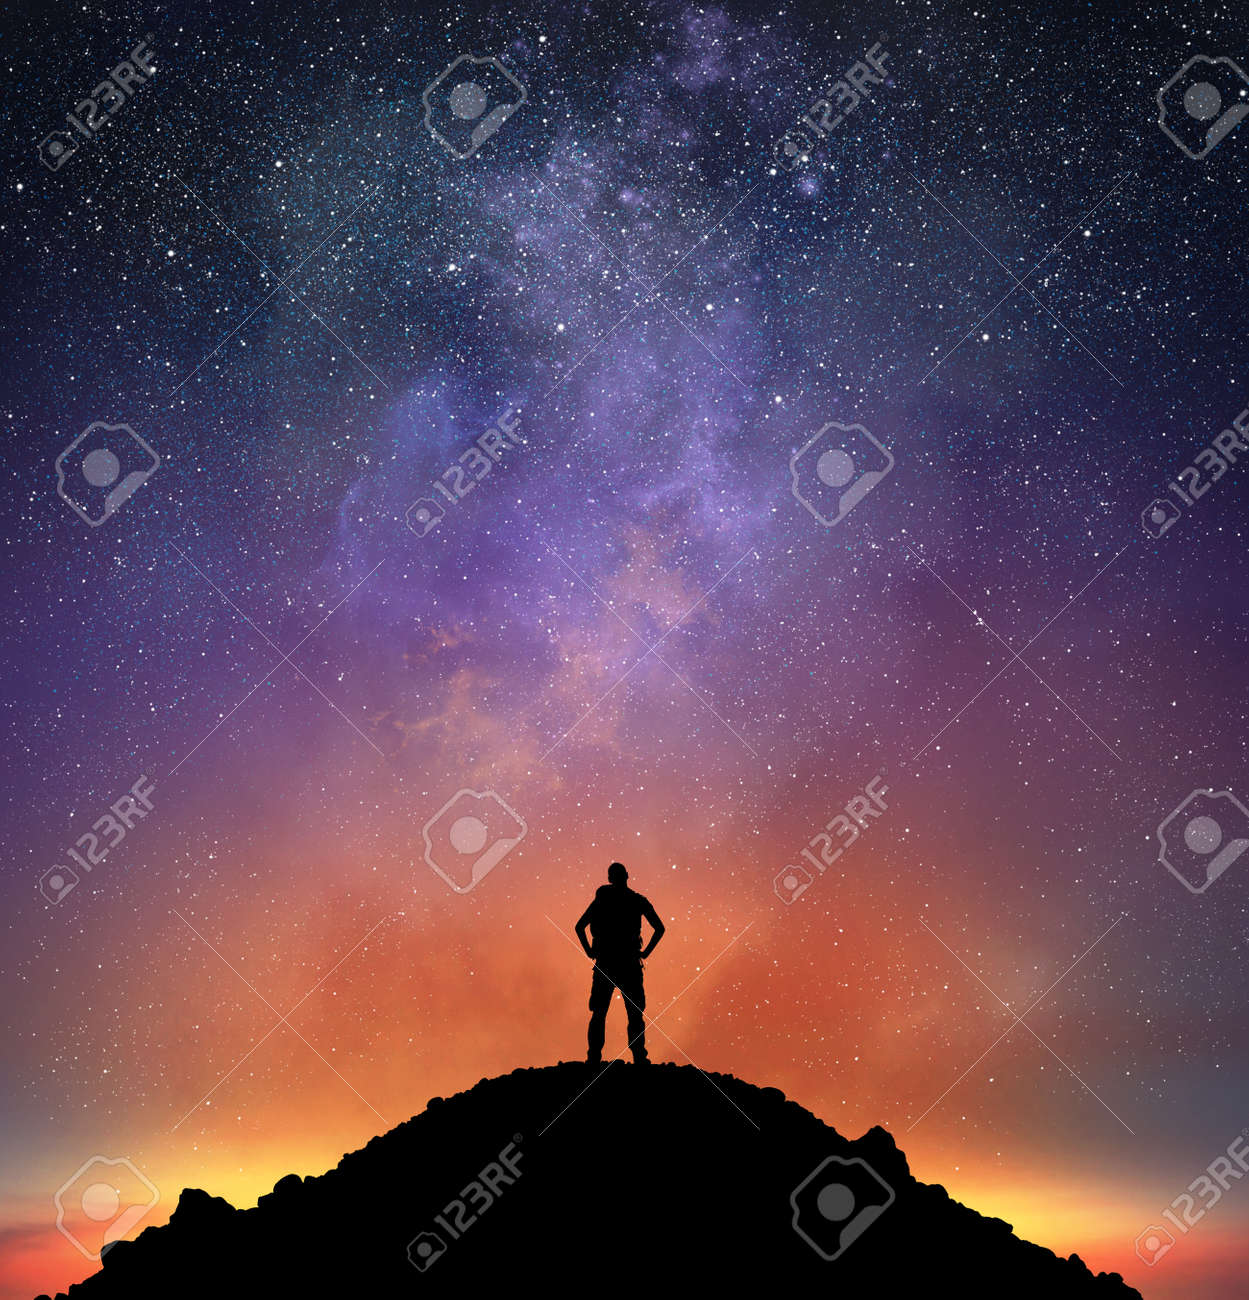 Excursionist on a mountain observe a bright sky full of stars Standard-Bild - 62101415